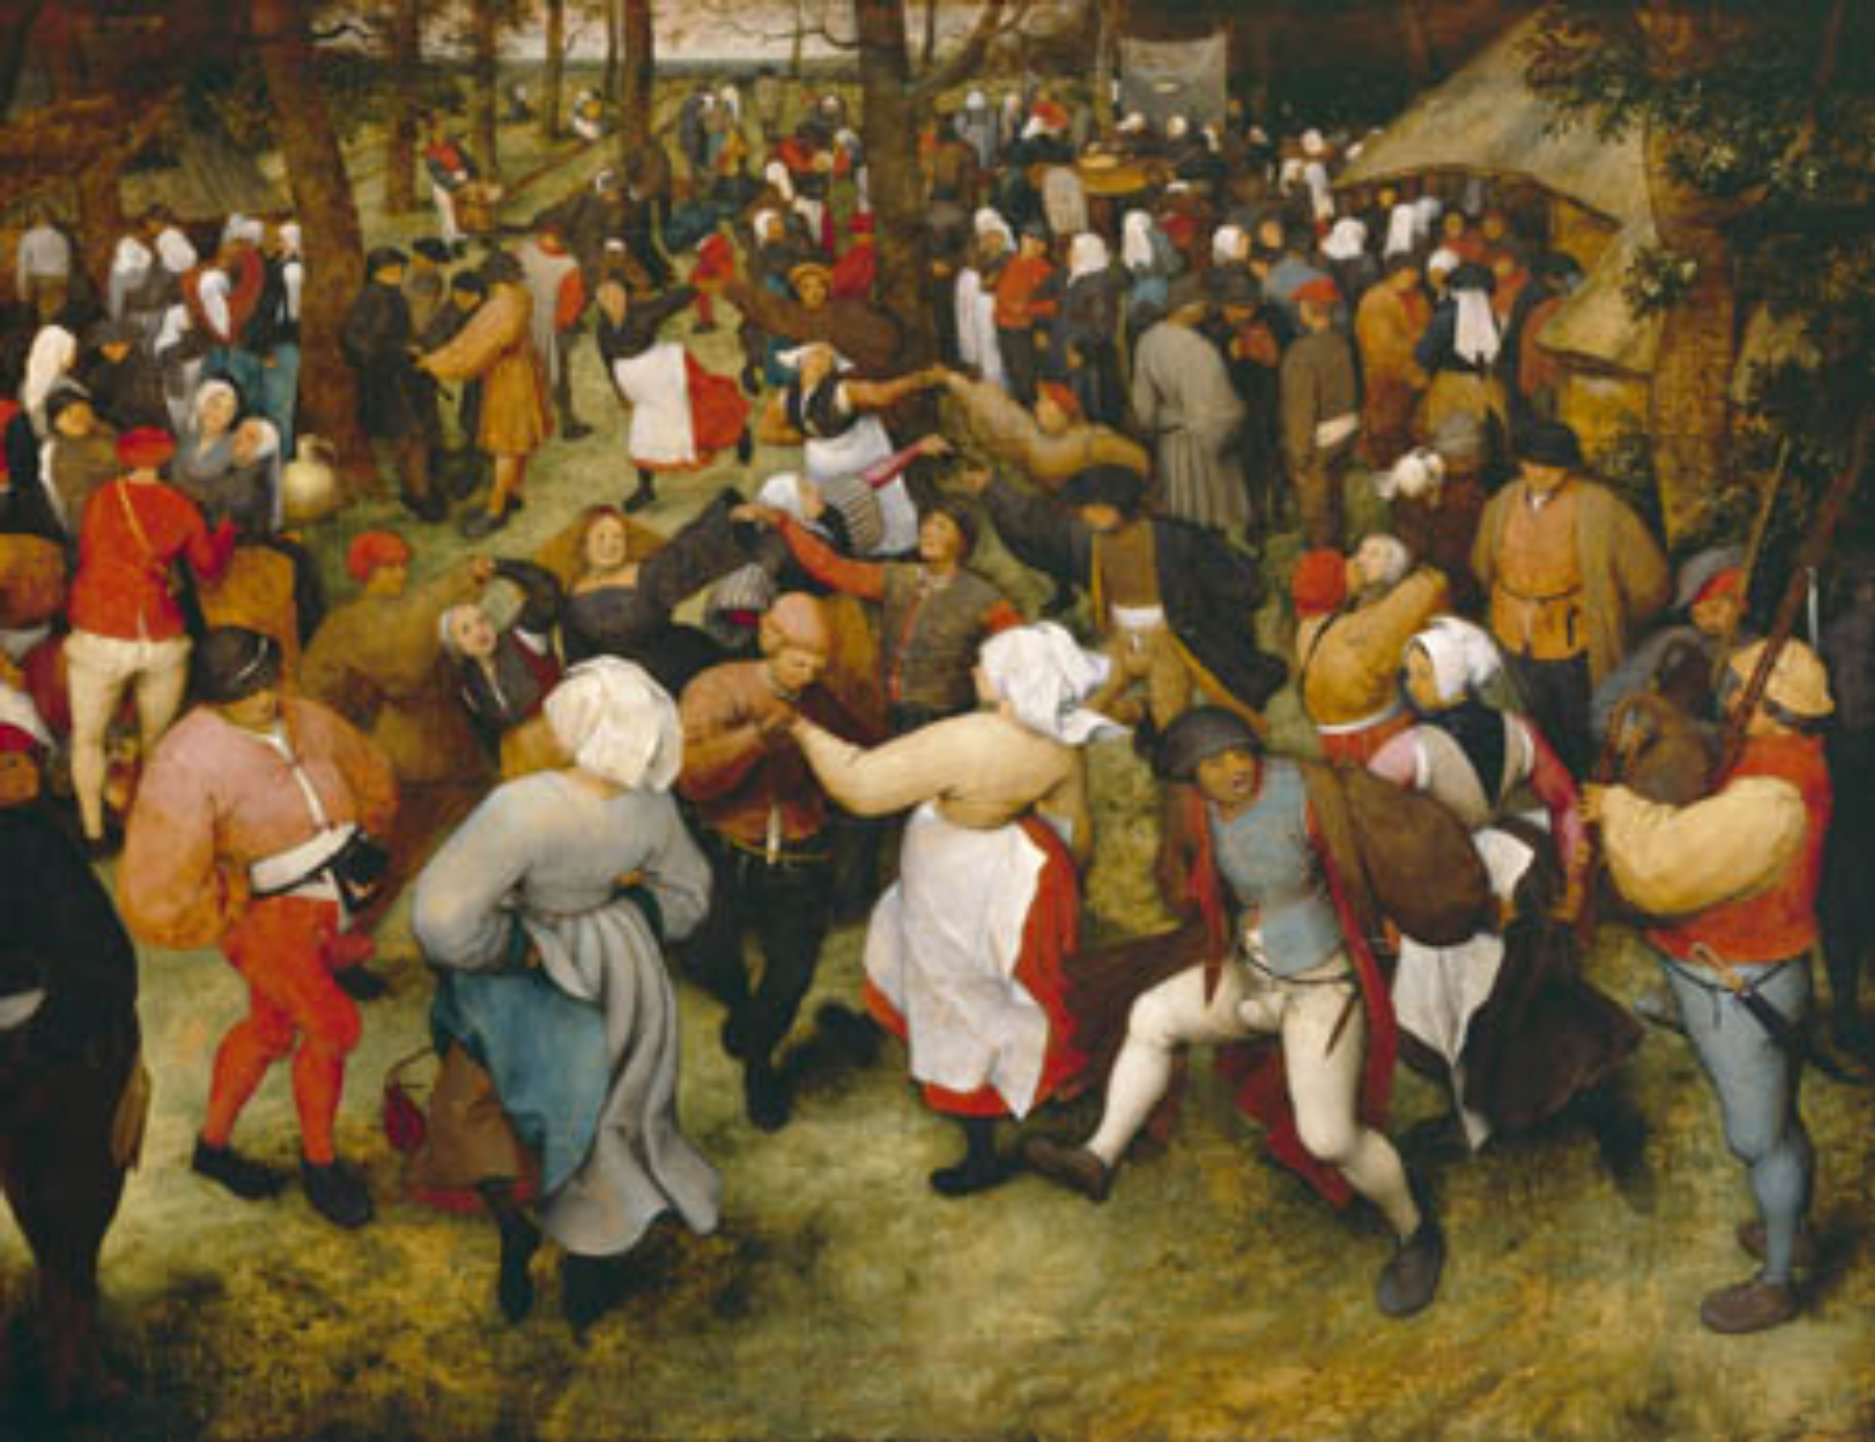 http://www.dancewith.co.uk/history/pieter-brueghel-wedding-dance.jpg